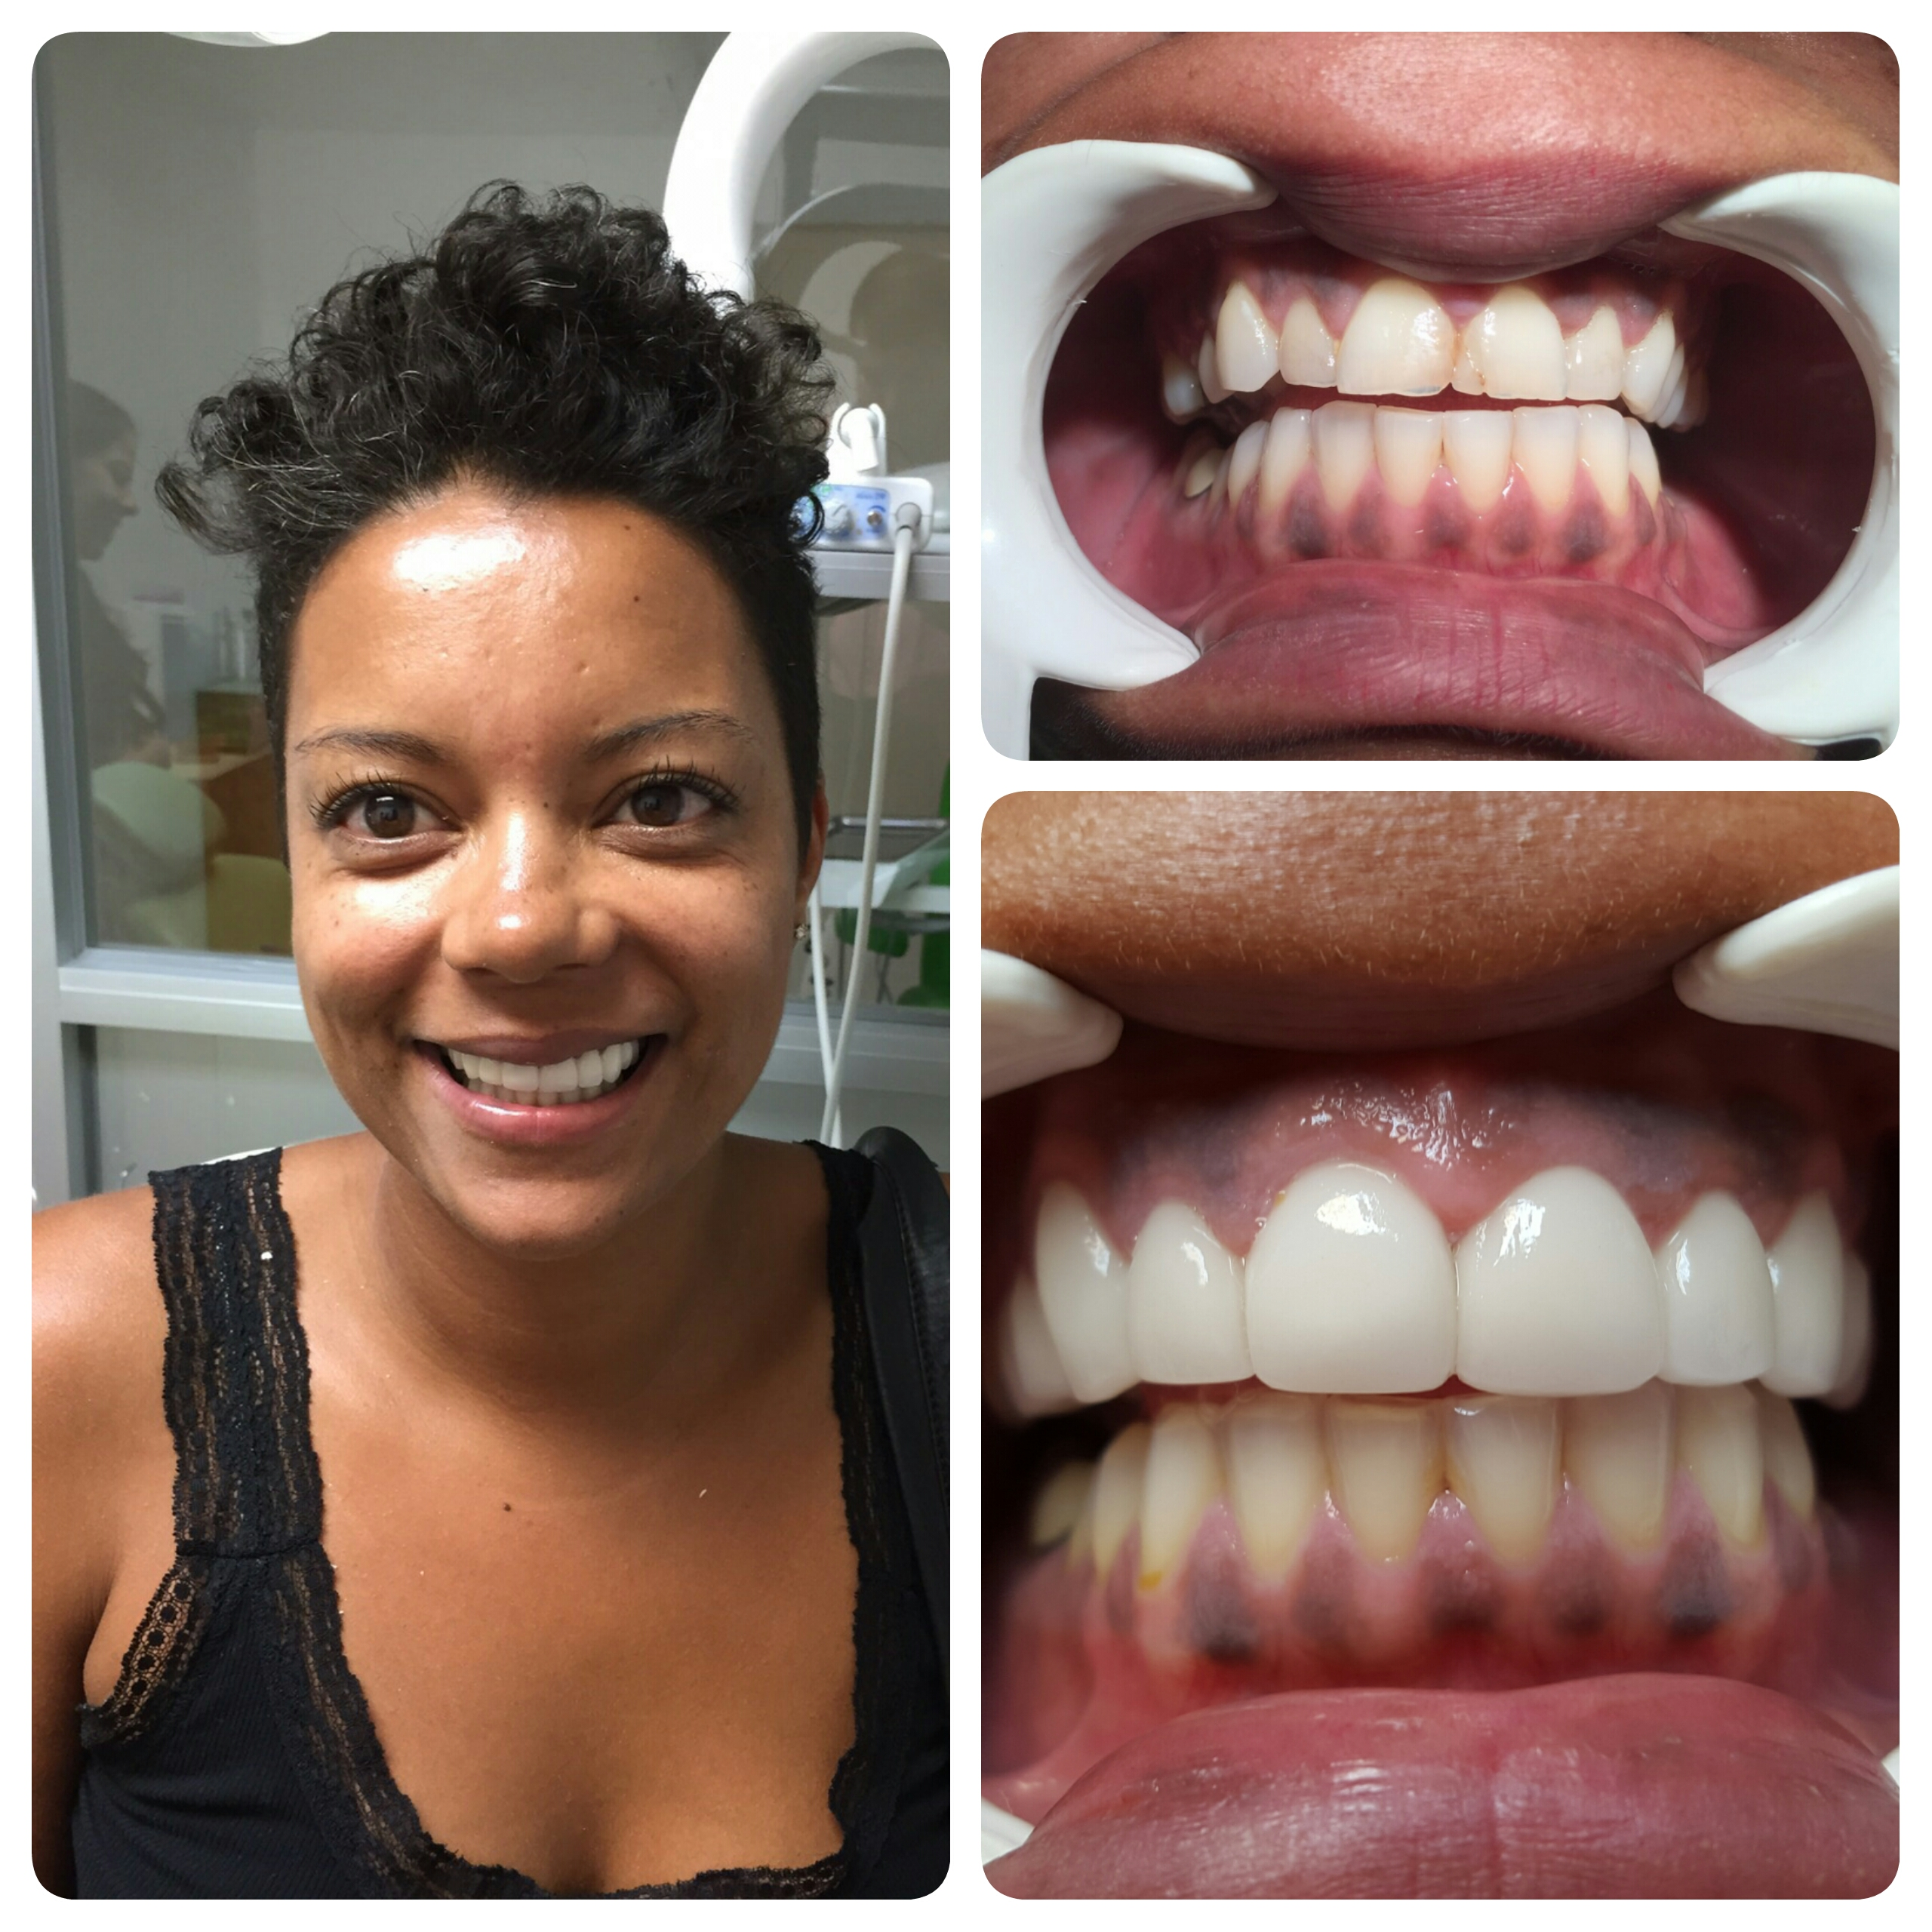 Emax porcelain crowns